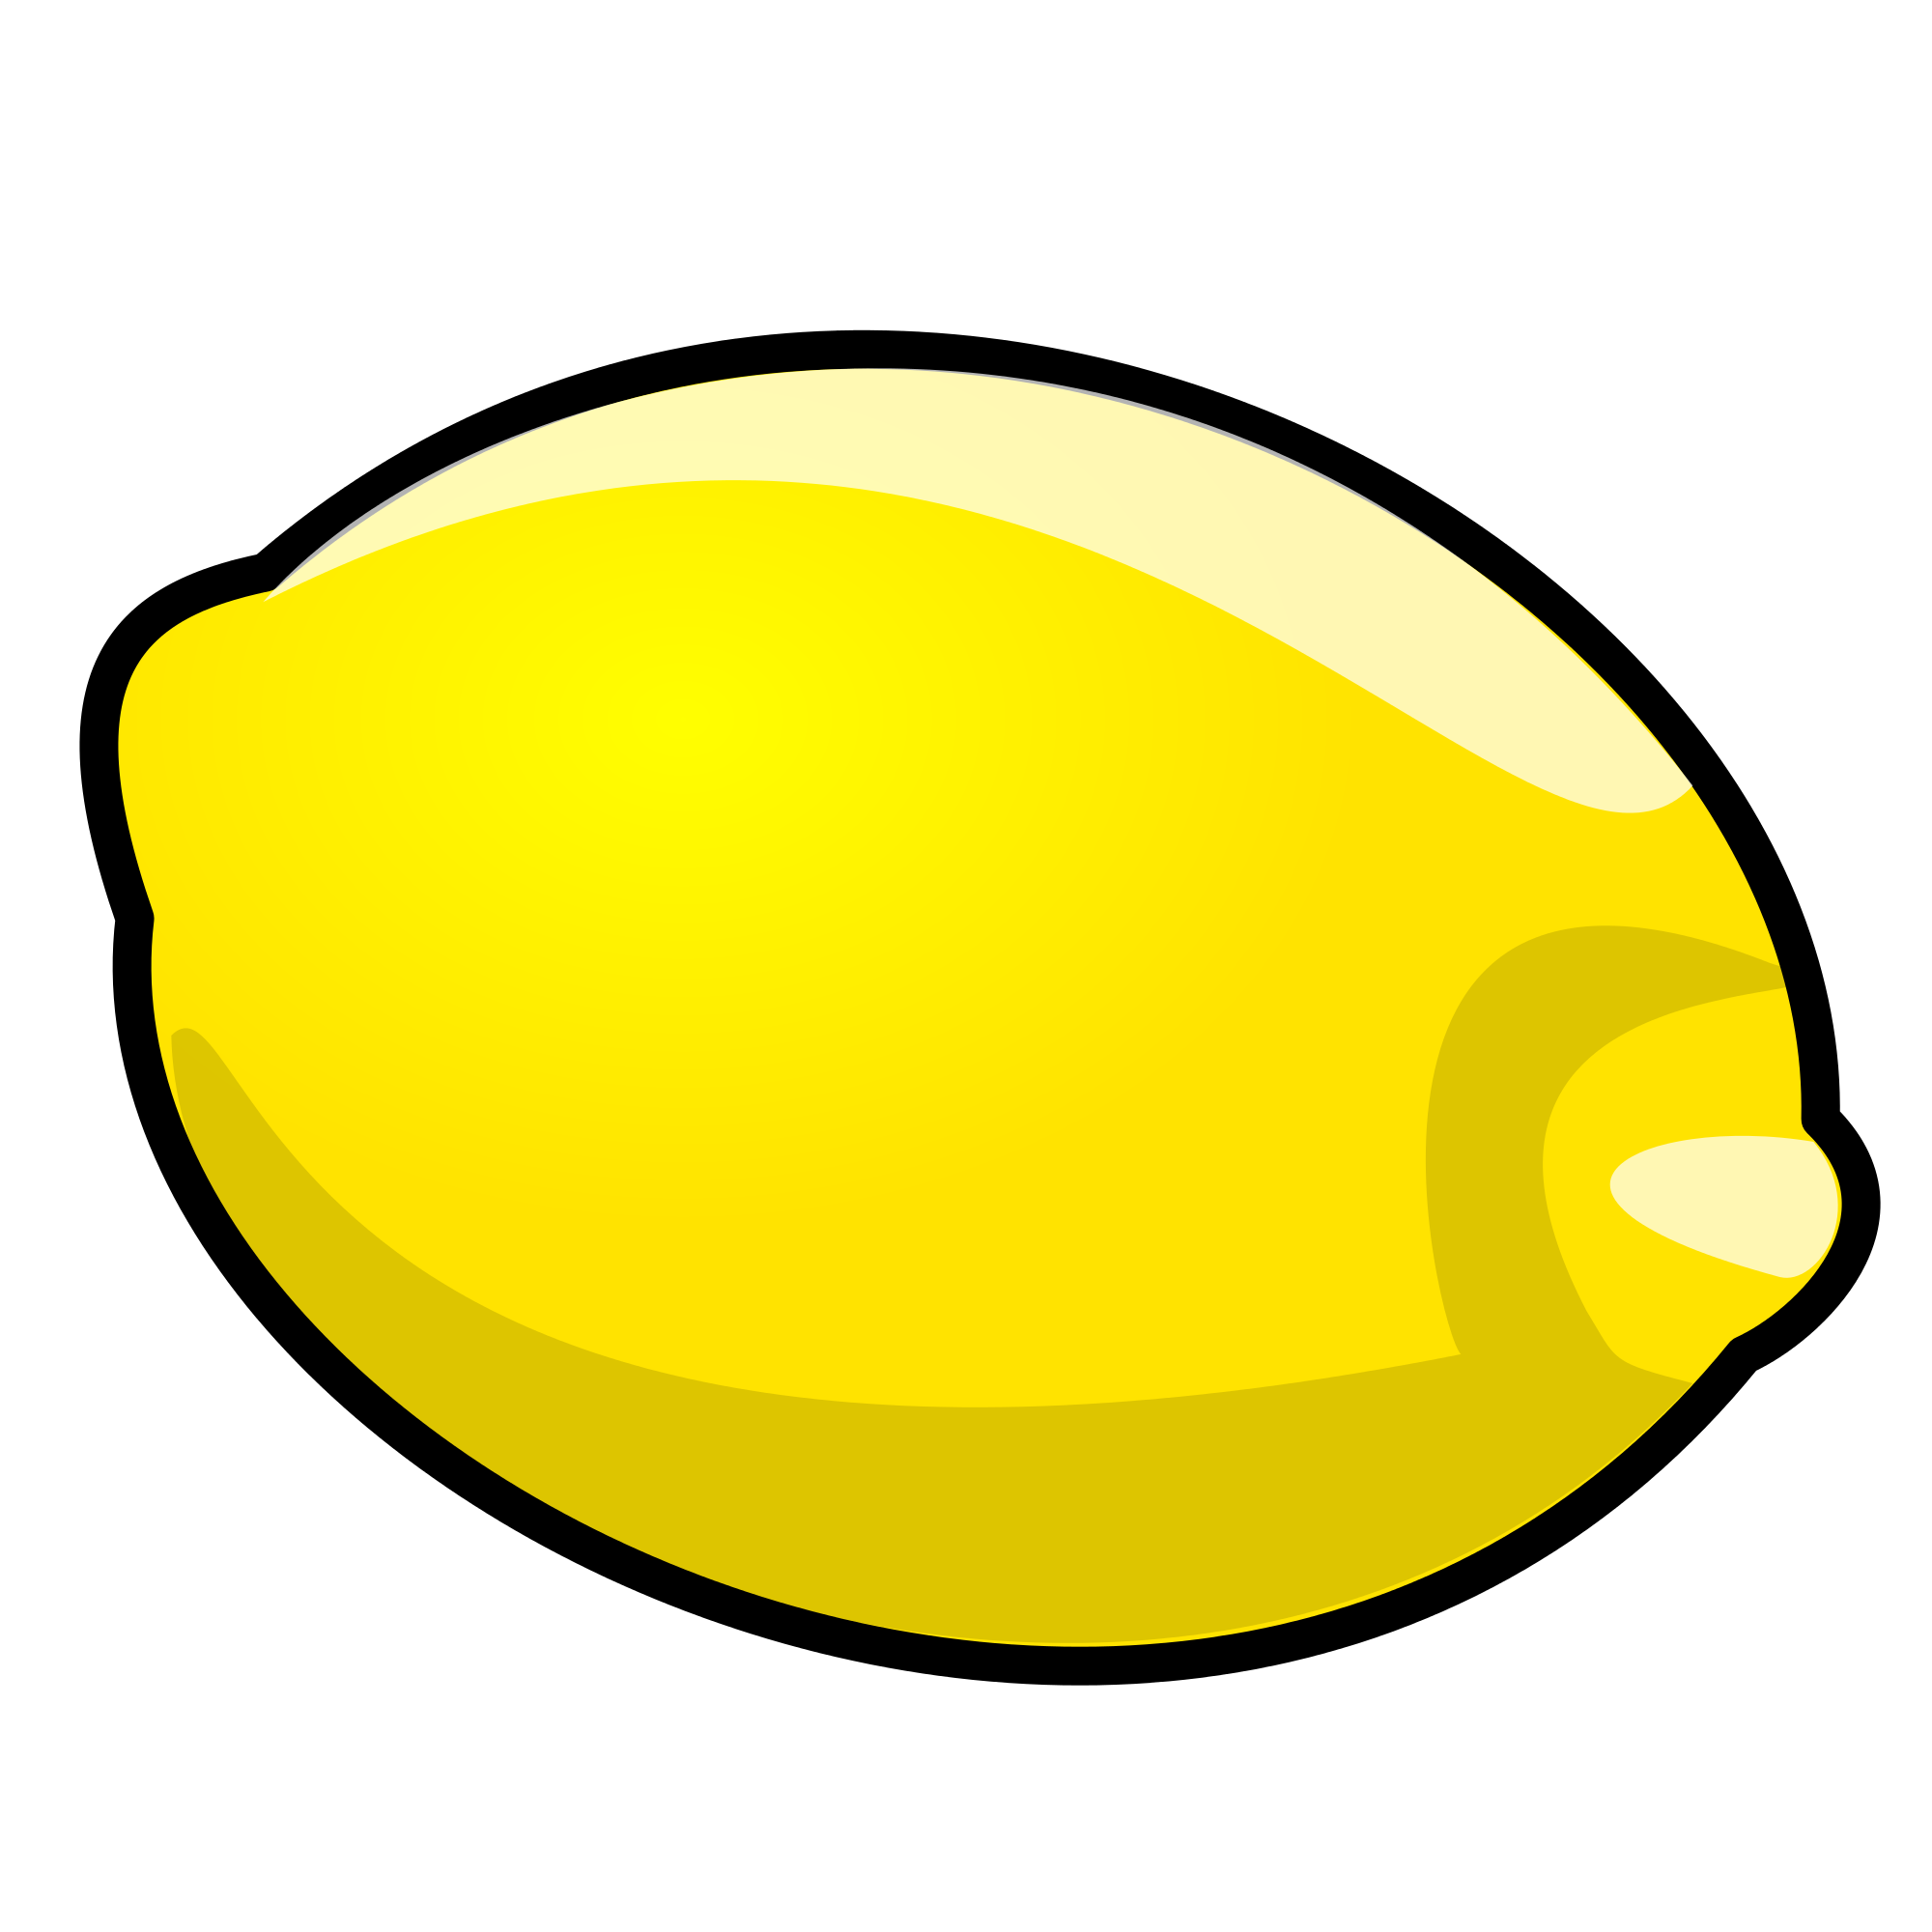 free File wikimedia commons open. Lemon svg